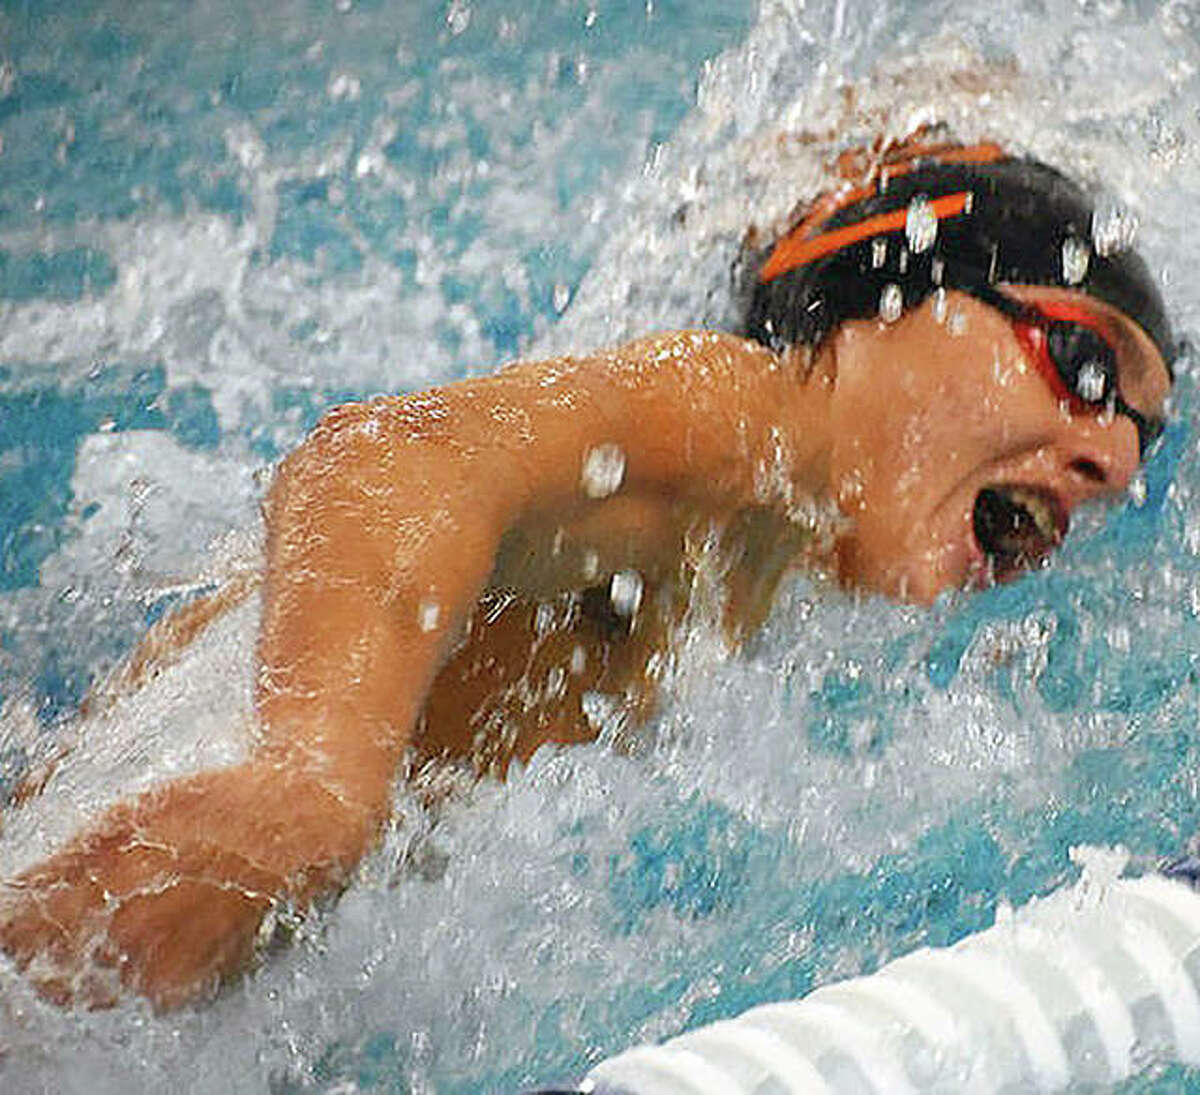 Evan Grinter of Edwardsville won the 50-yard freestyle in 21.87 seconds and won the 100-yard freestyle in 49.57 at the Region 4 meet, which was put together to take the place of the traditional IHSA area sectional meet. The IHSA cancelled the boys swim postseason last season because of the pandemic.